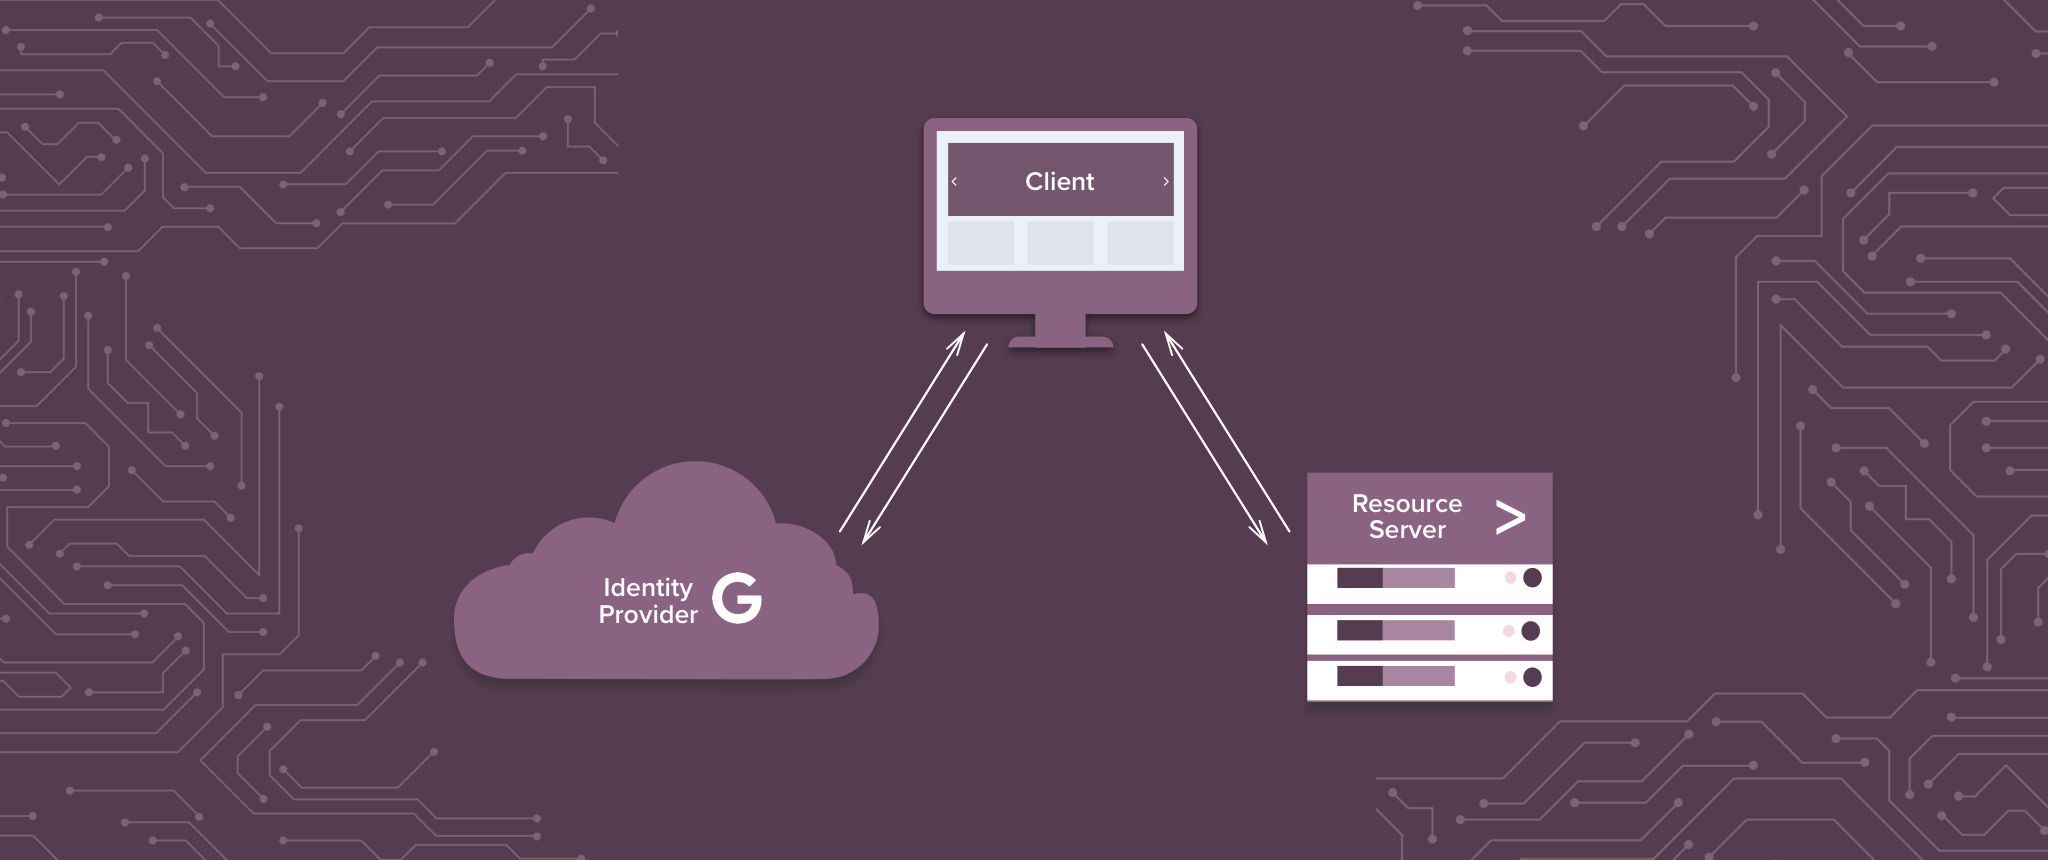 SAML SSO Authentication for Splunk with G Suite